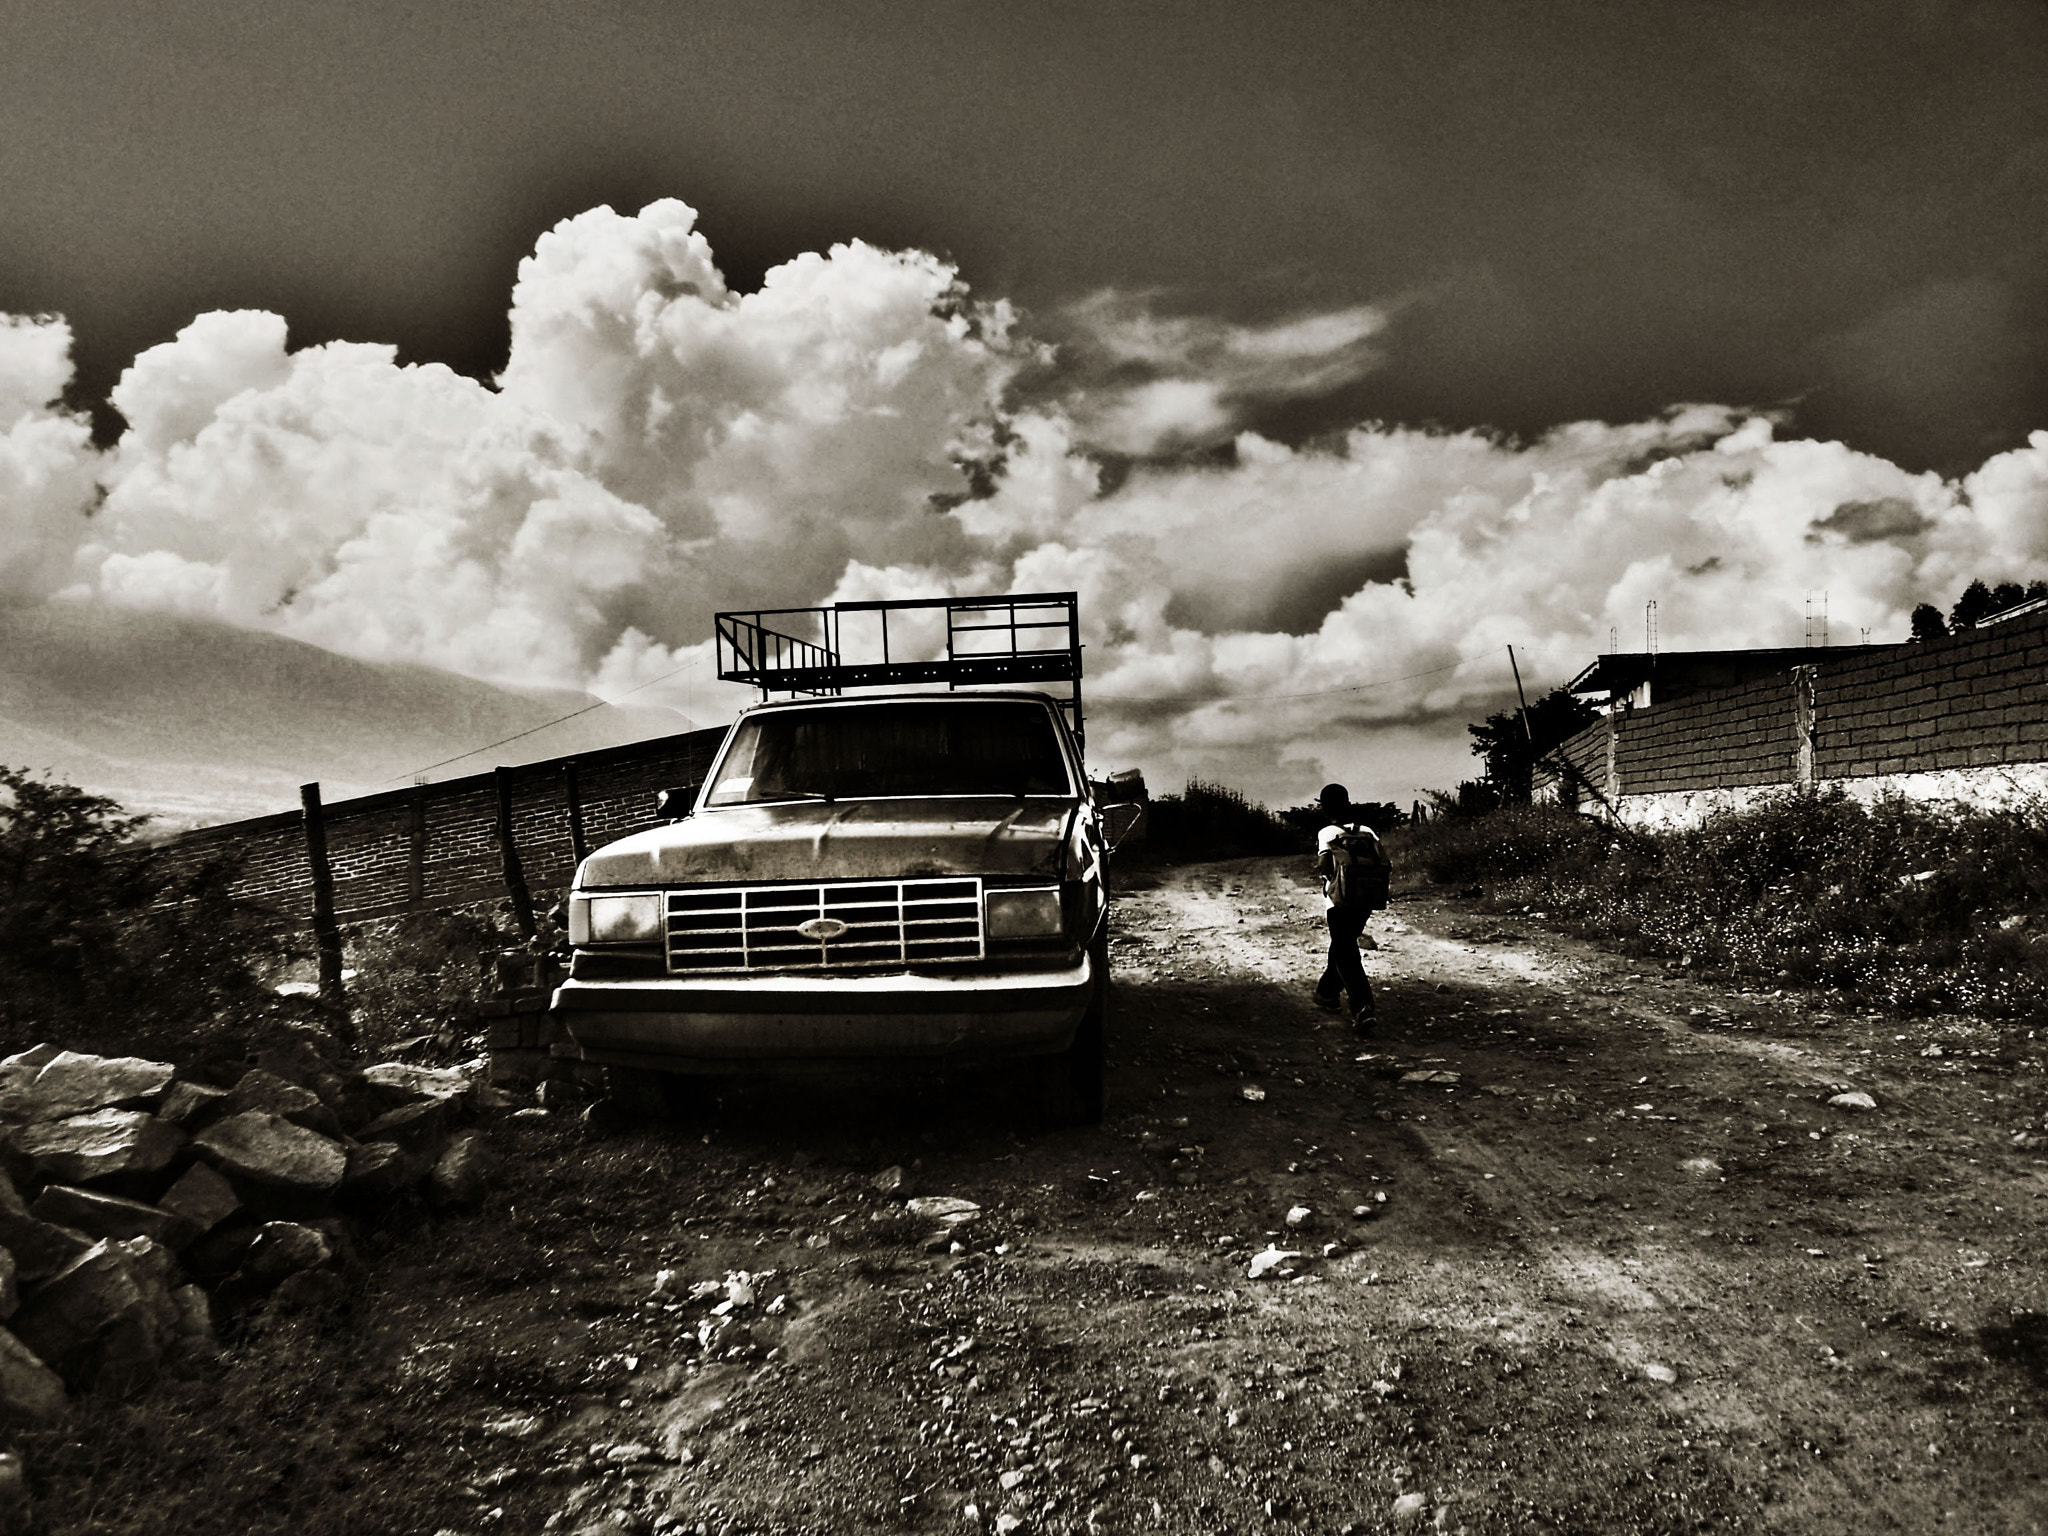 Photograph Road by Tania Lara on 500px